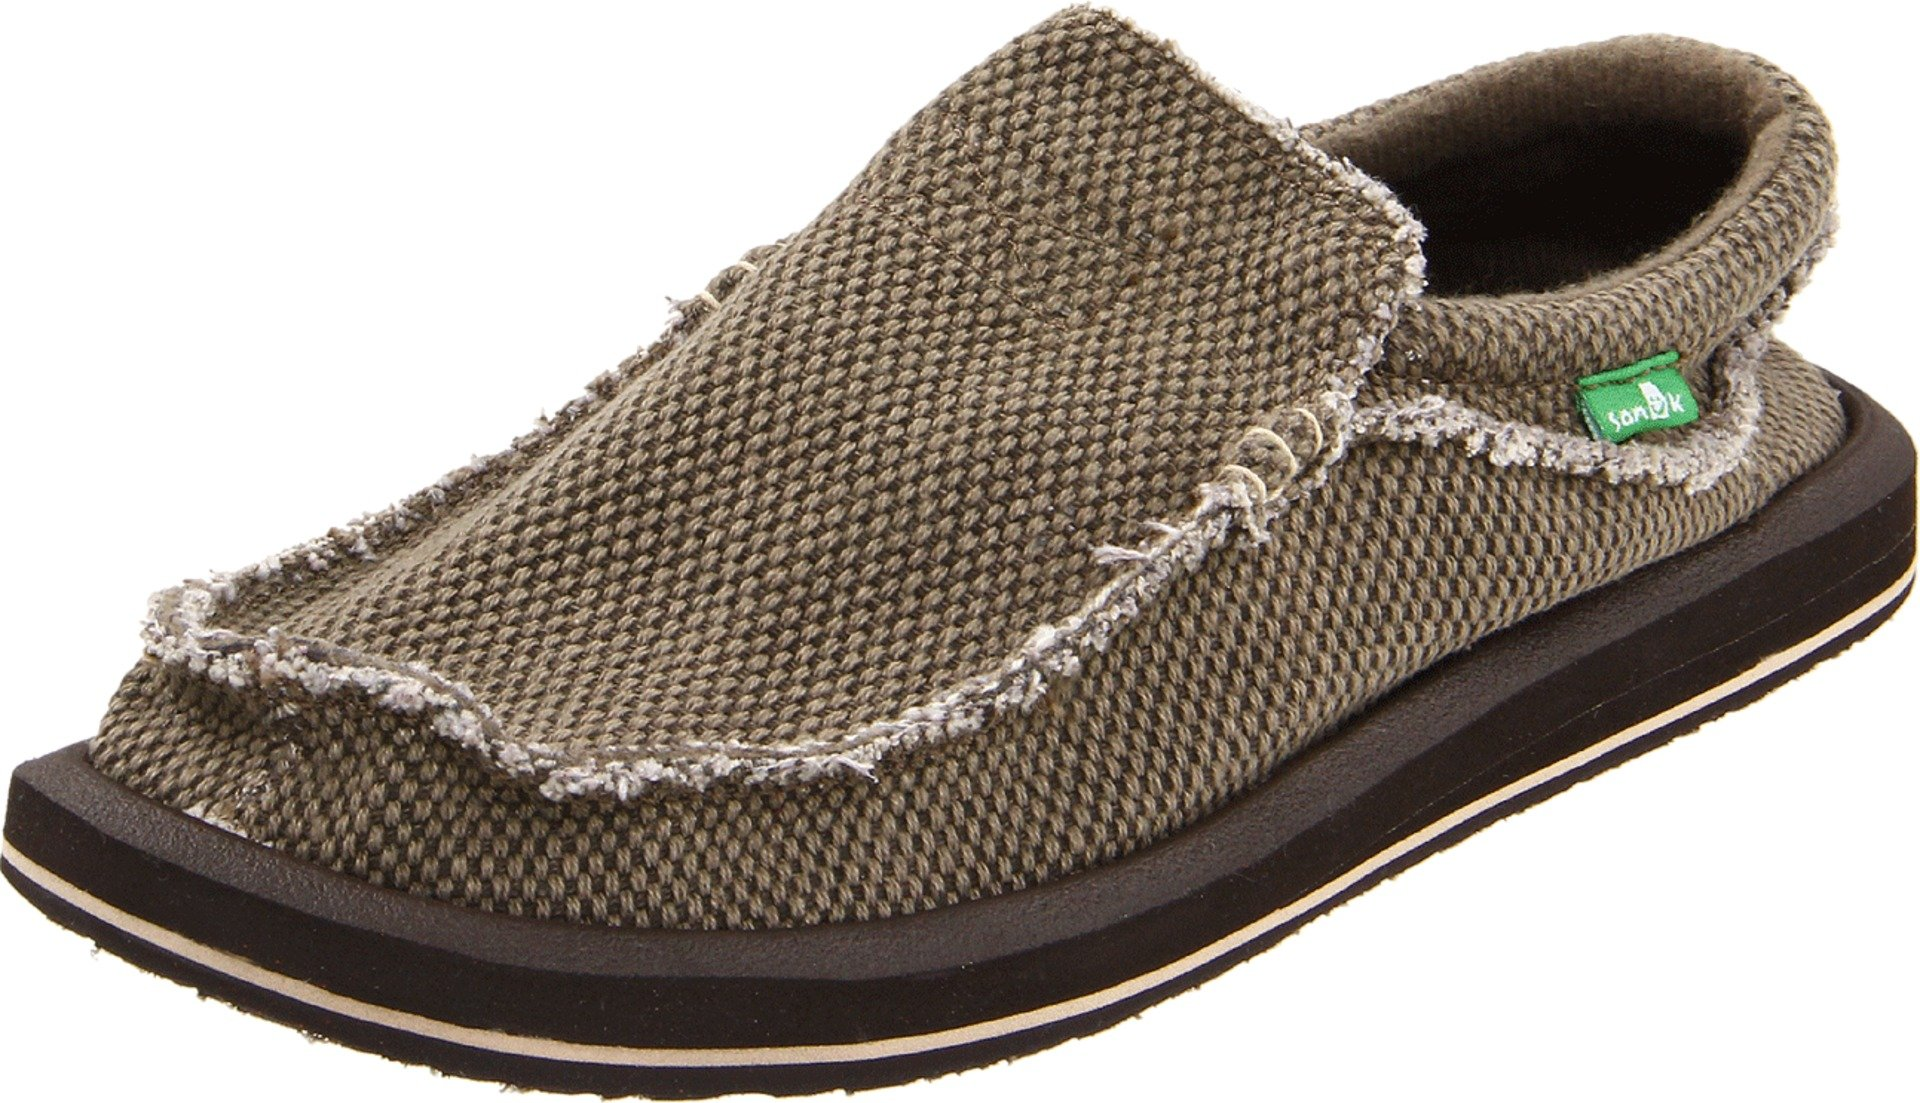 Sanuk Men's Chiba Slip-On, Brown, 11 M US by Sanuk